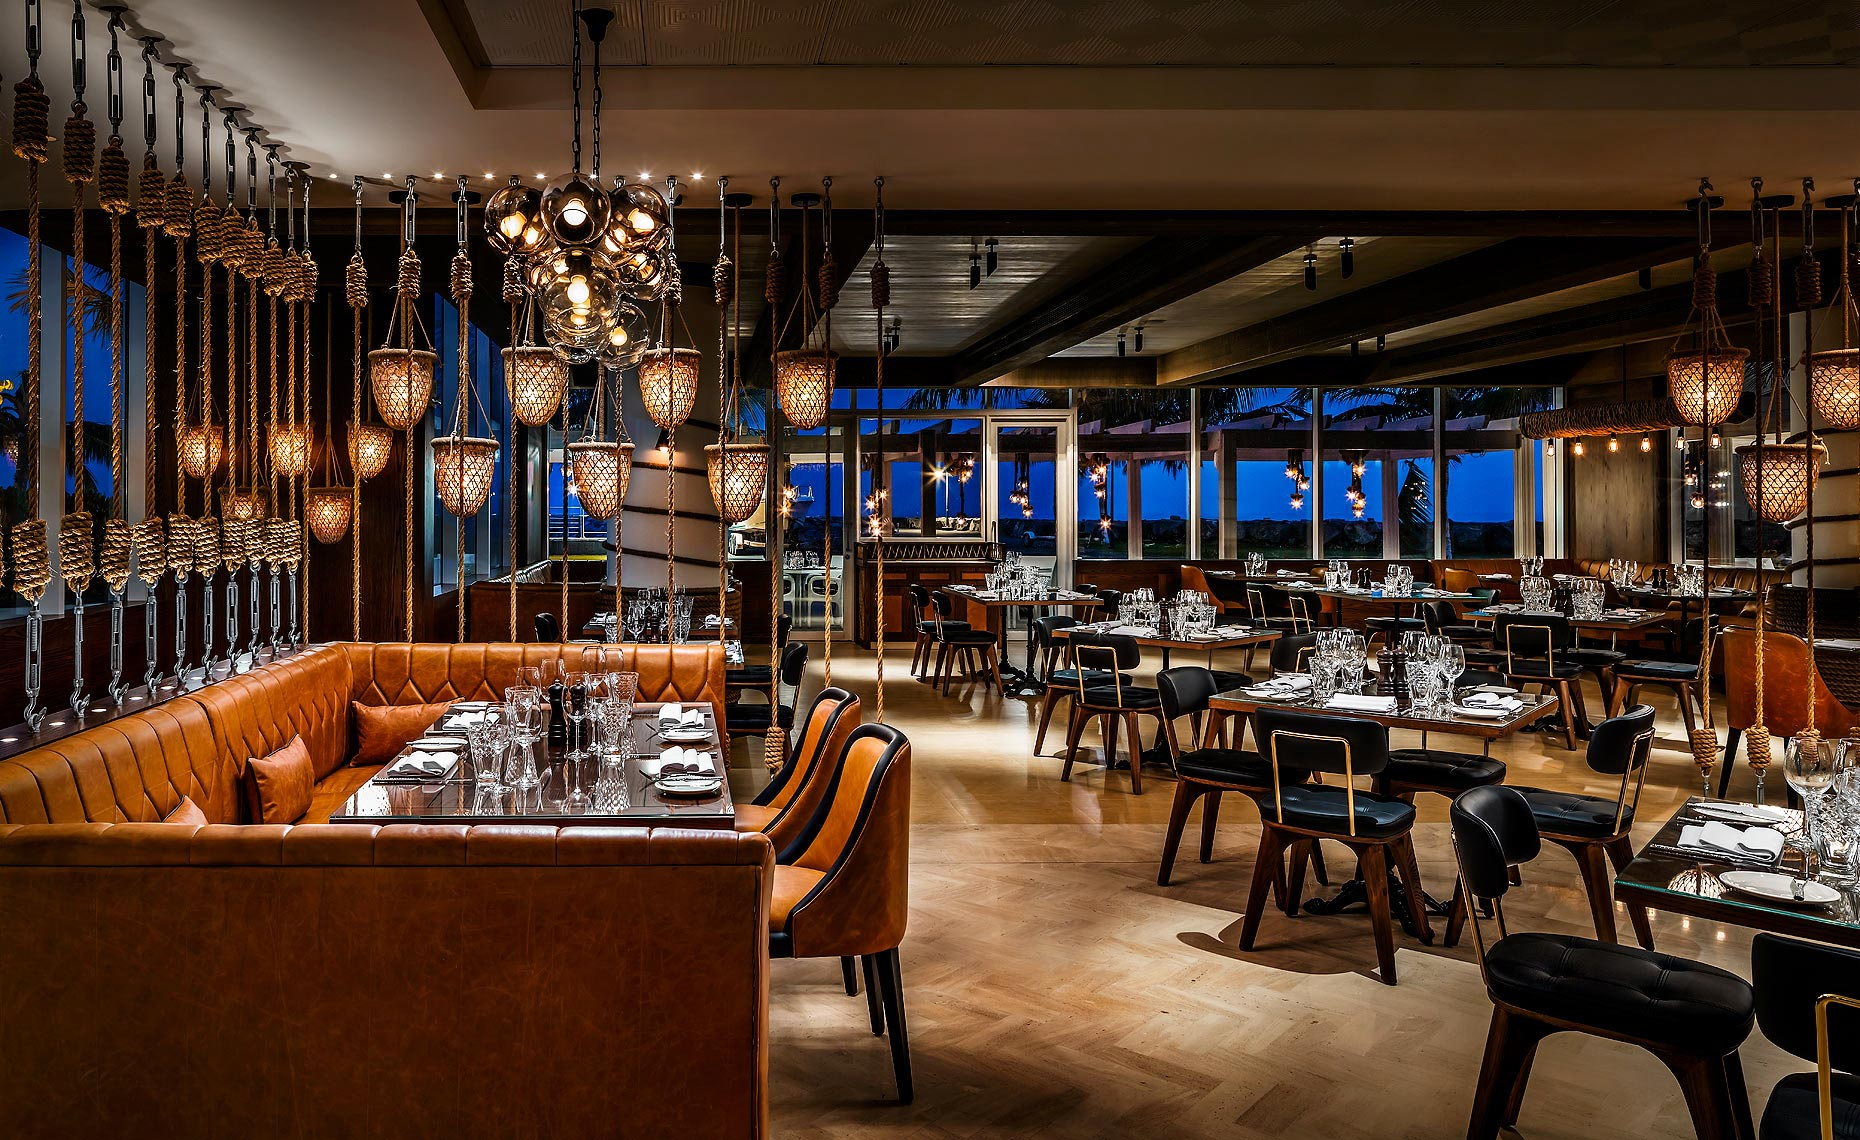 Fairmont Fujairah Copper Lobster Restaurant by Stickman Design Dubai